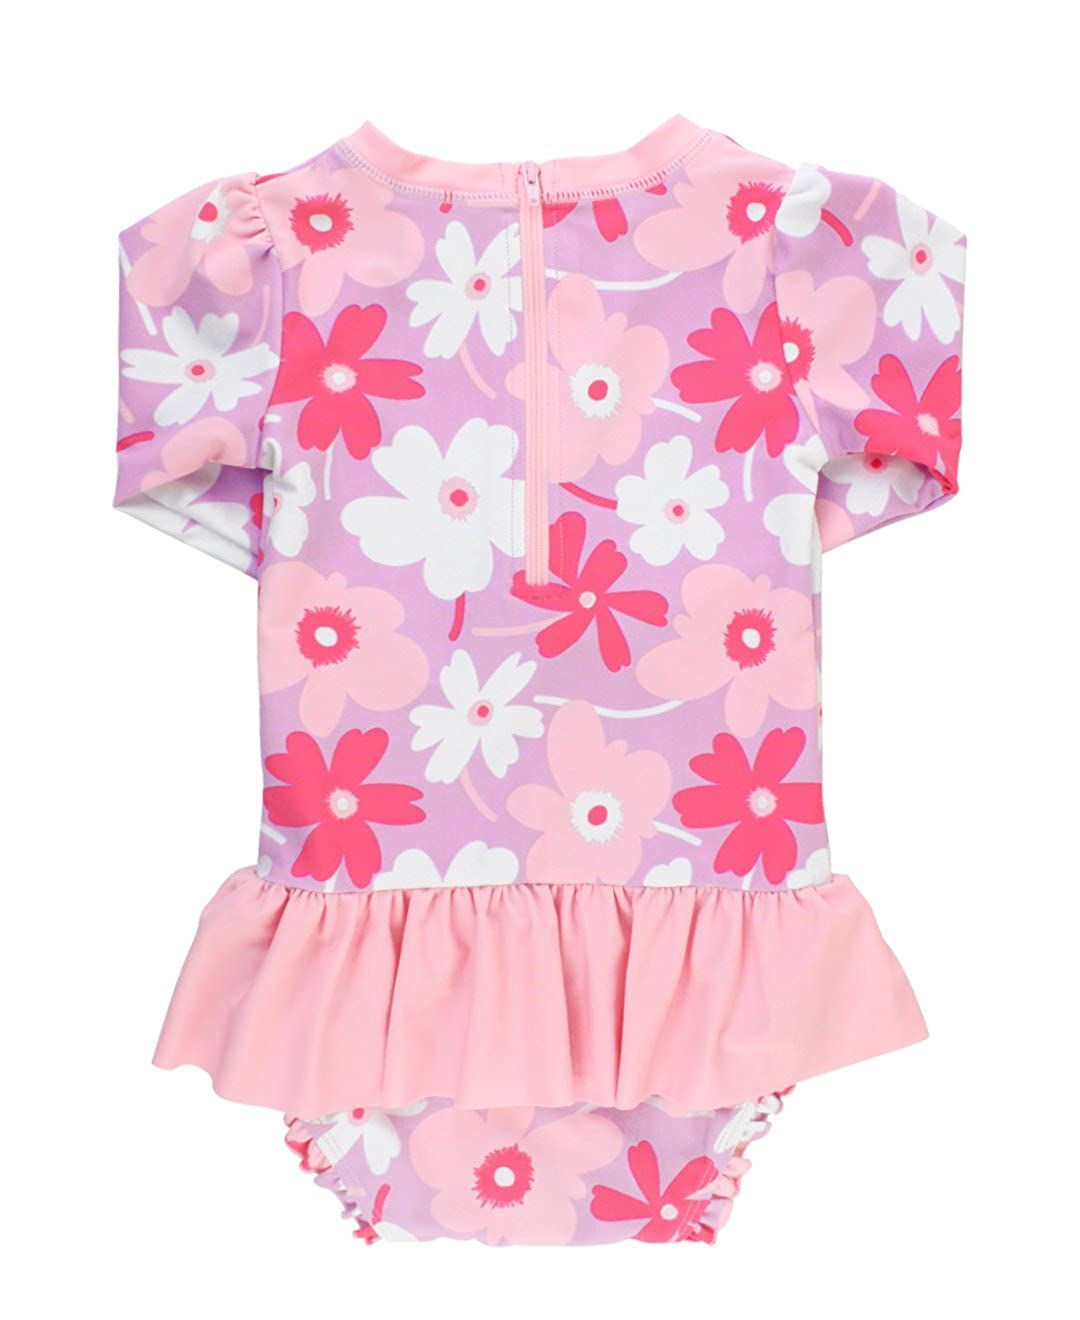 RuffleButts Baby//Toddler Girls UPF 50 Sun Protection Long Sleeve One Piece Swimsuit with Zipper